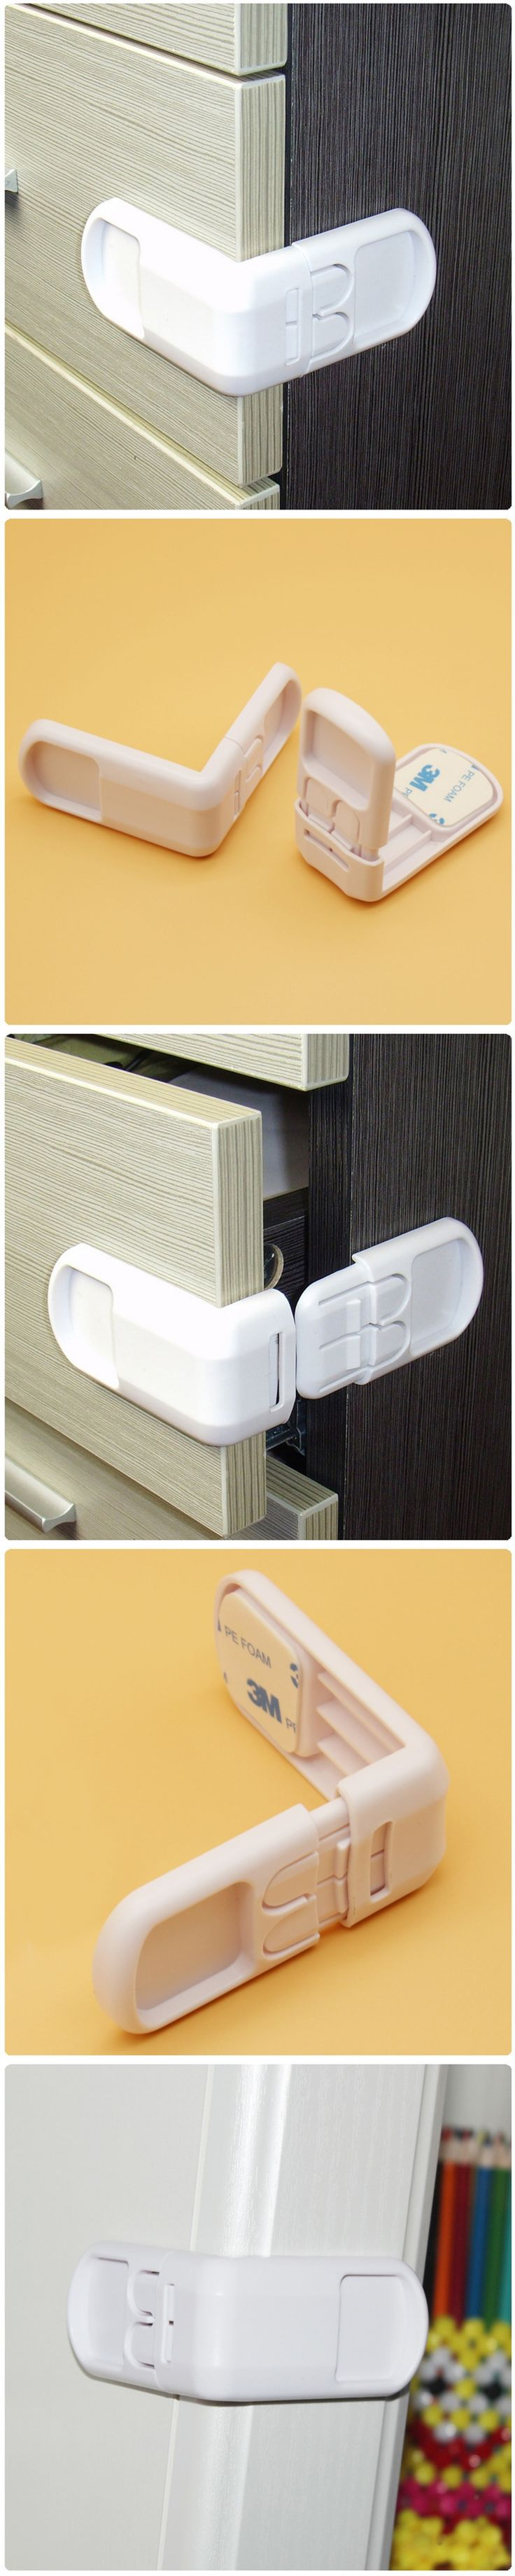 Baby Safety Lock Security Locks Drawer Lengthened Bendy Plastic Locker Quality Safety locks for child Cabinet Door Drawers